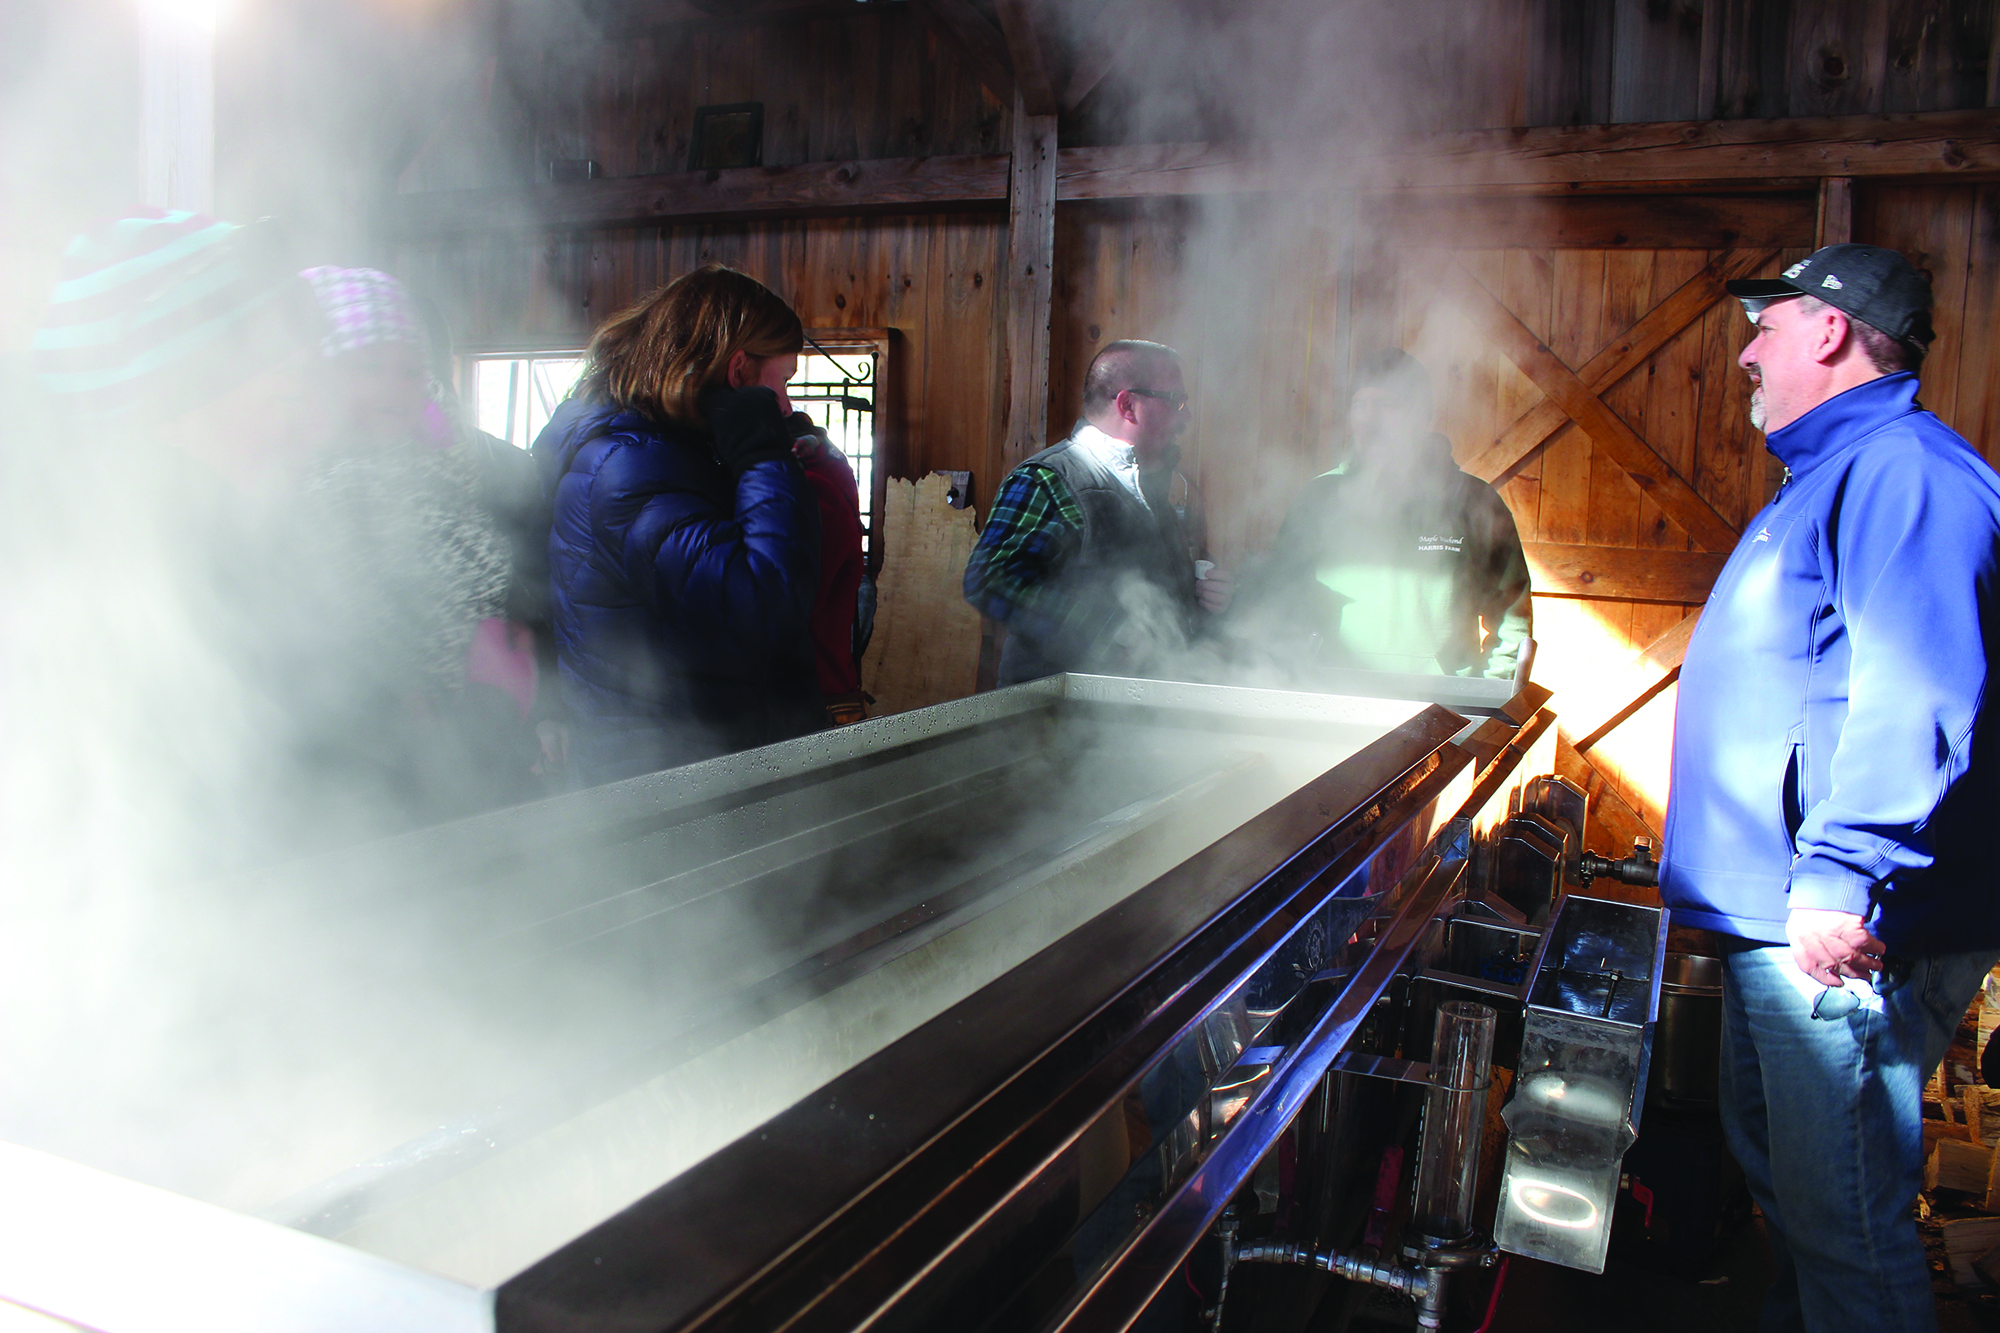 Sap boils in the evaporator at the Harris Farm sugarhouse on Sunday. RYDER SCHUMACHER/JournalTribune